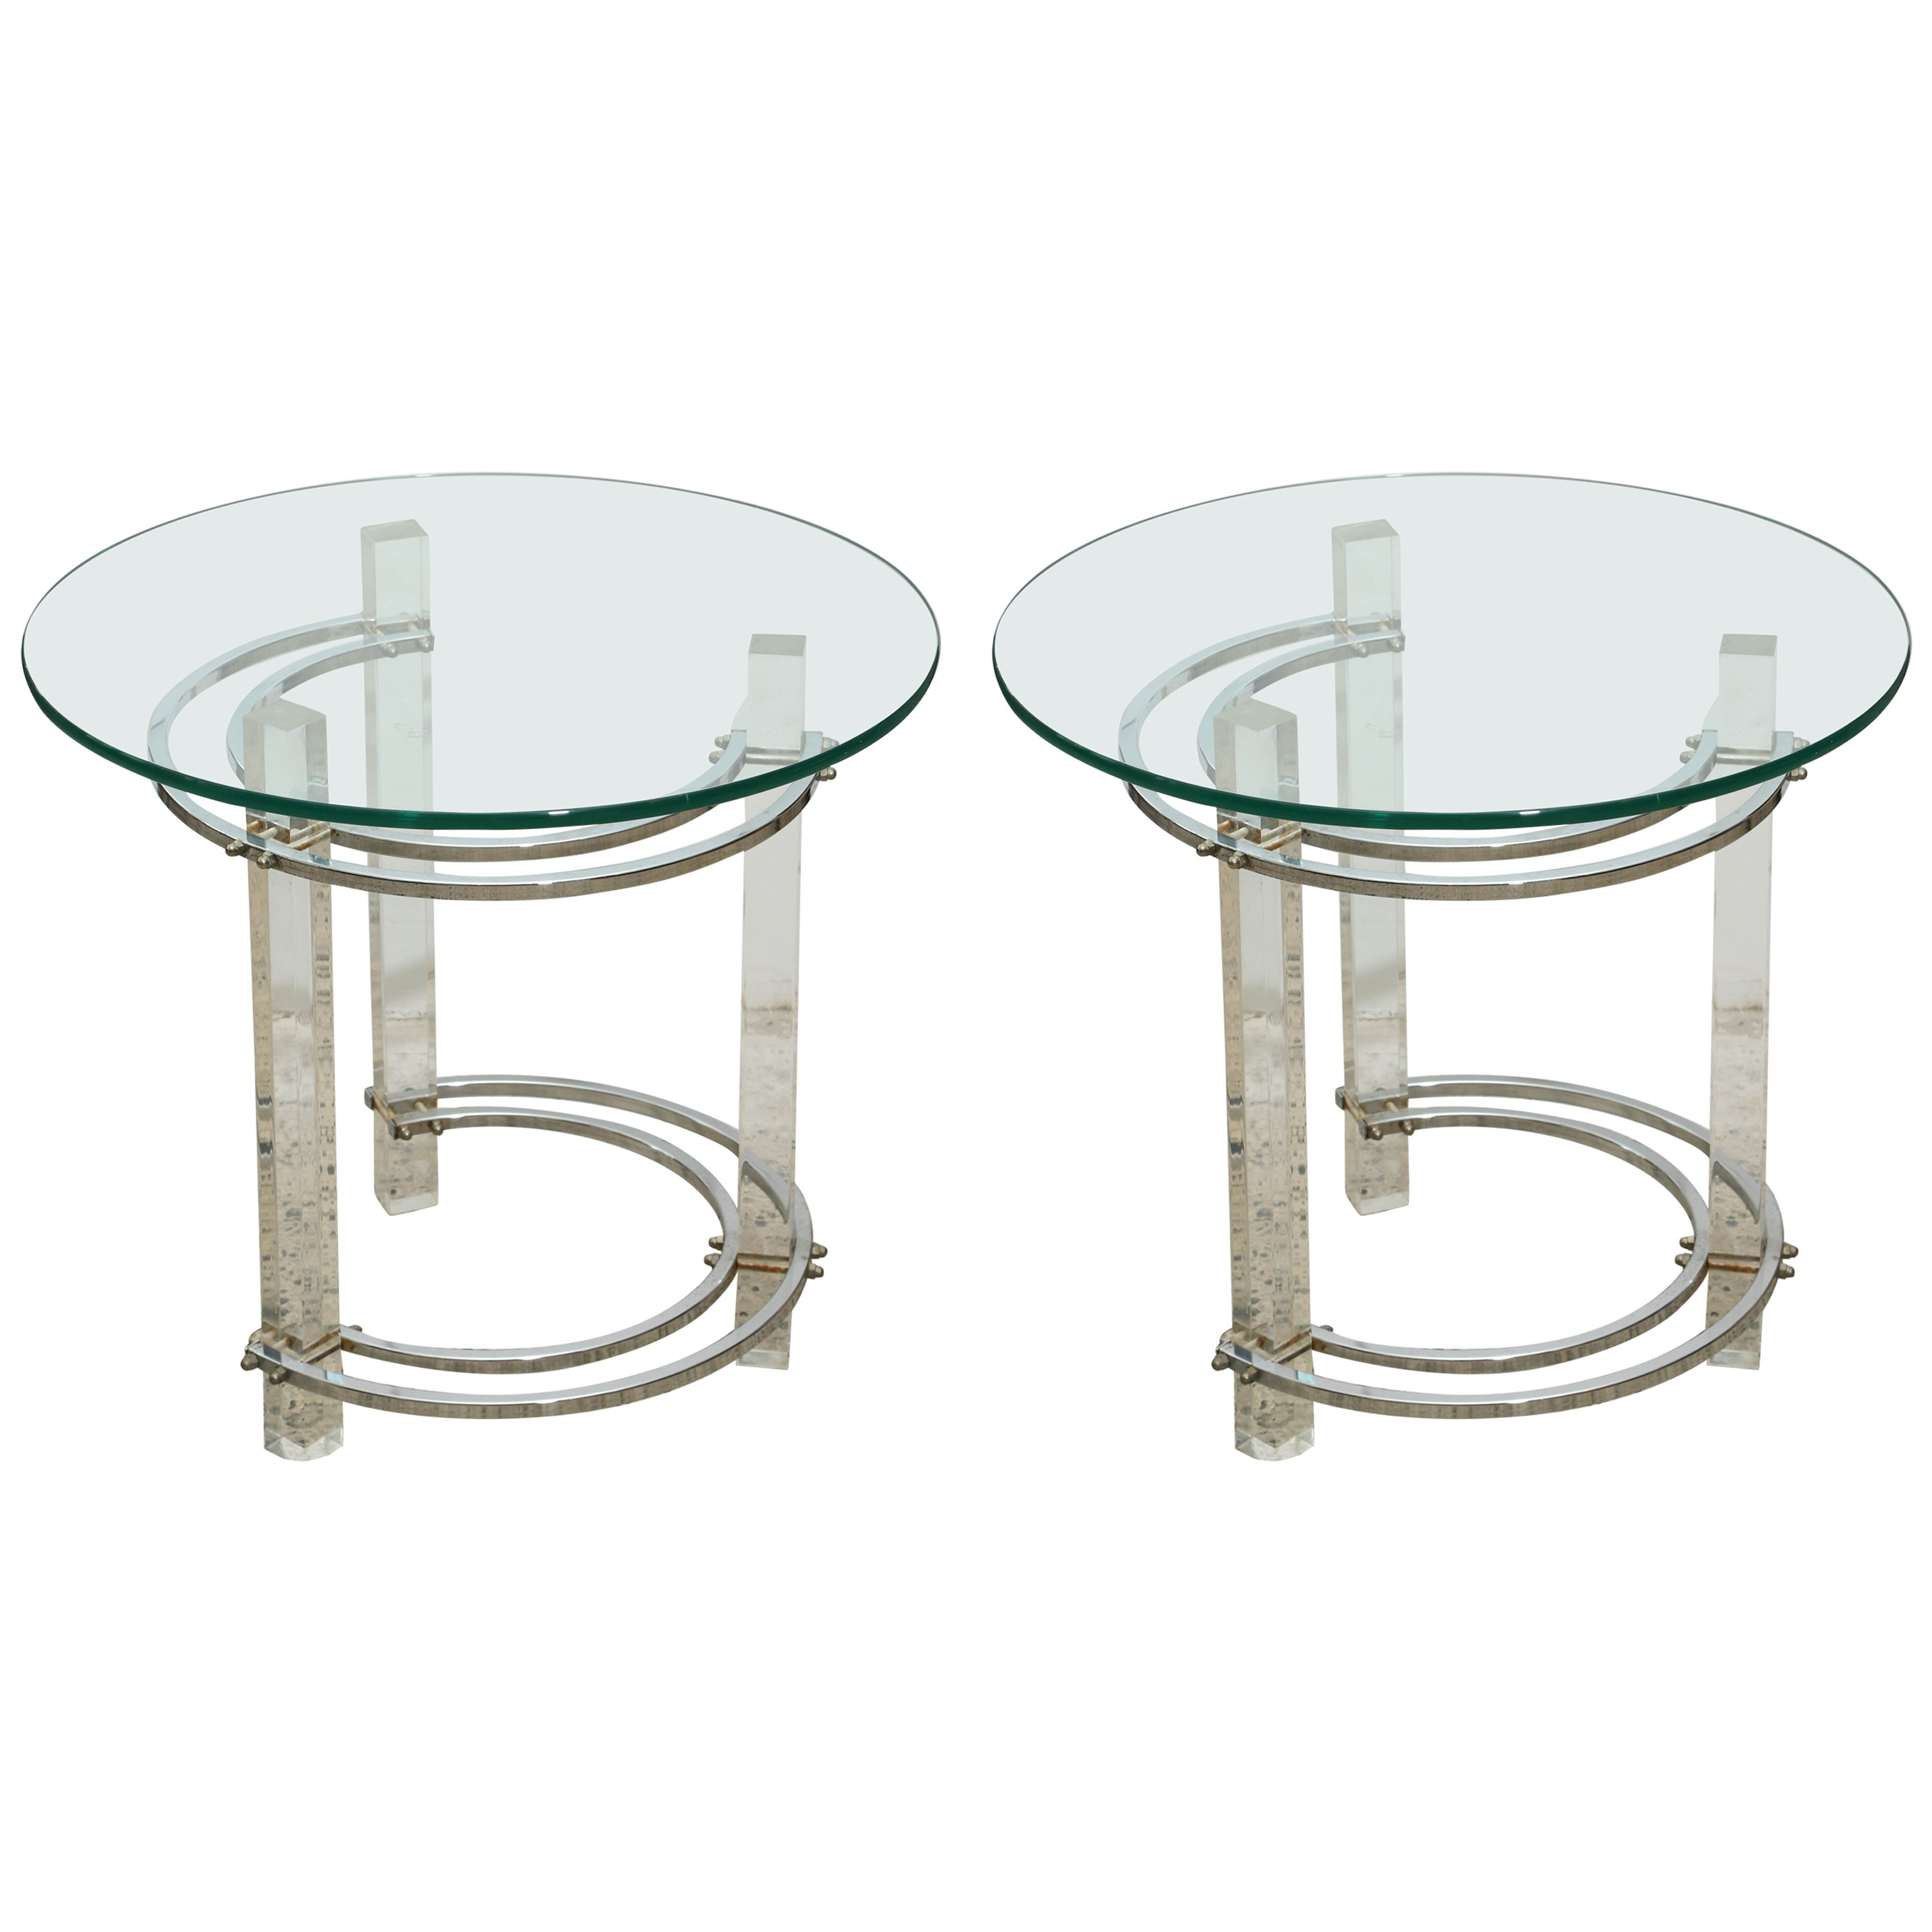 Pair of Round Chrome and Glass Charles Hollis Jones End Tables, USA, 1970s